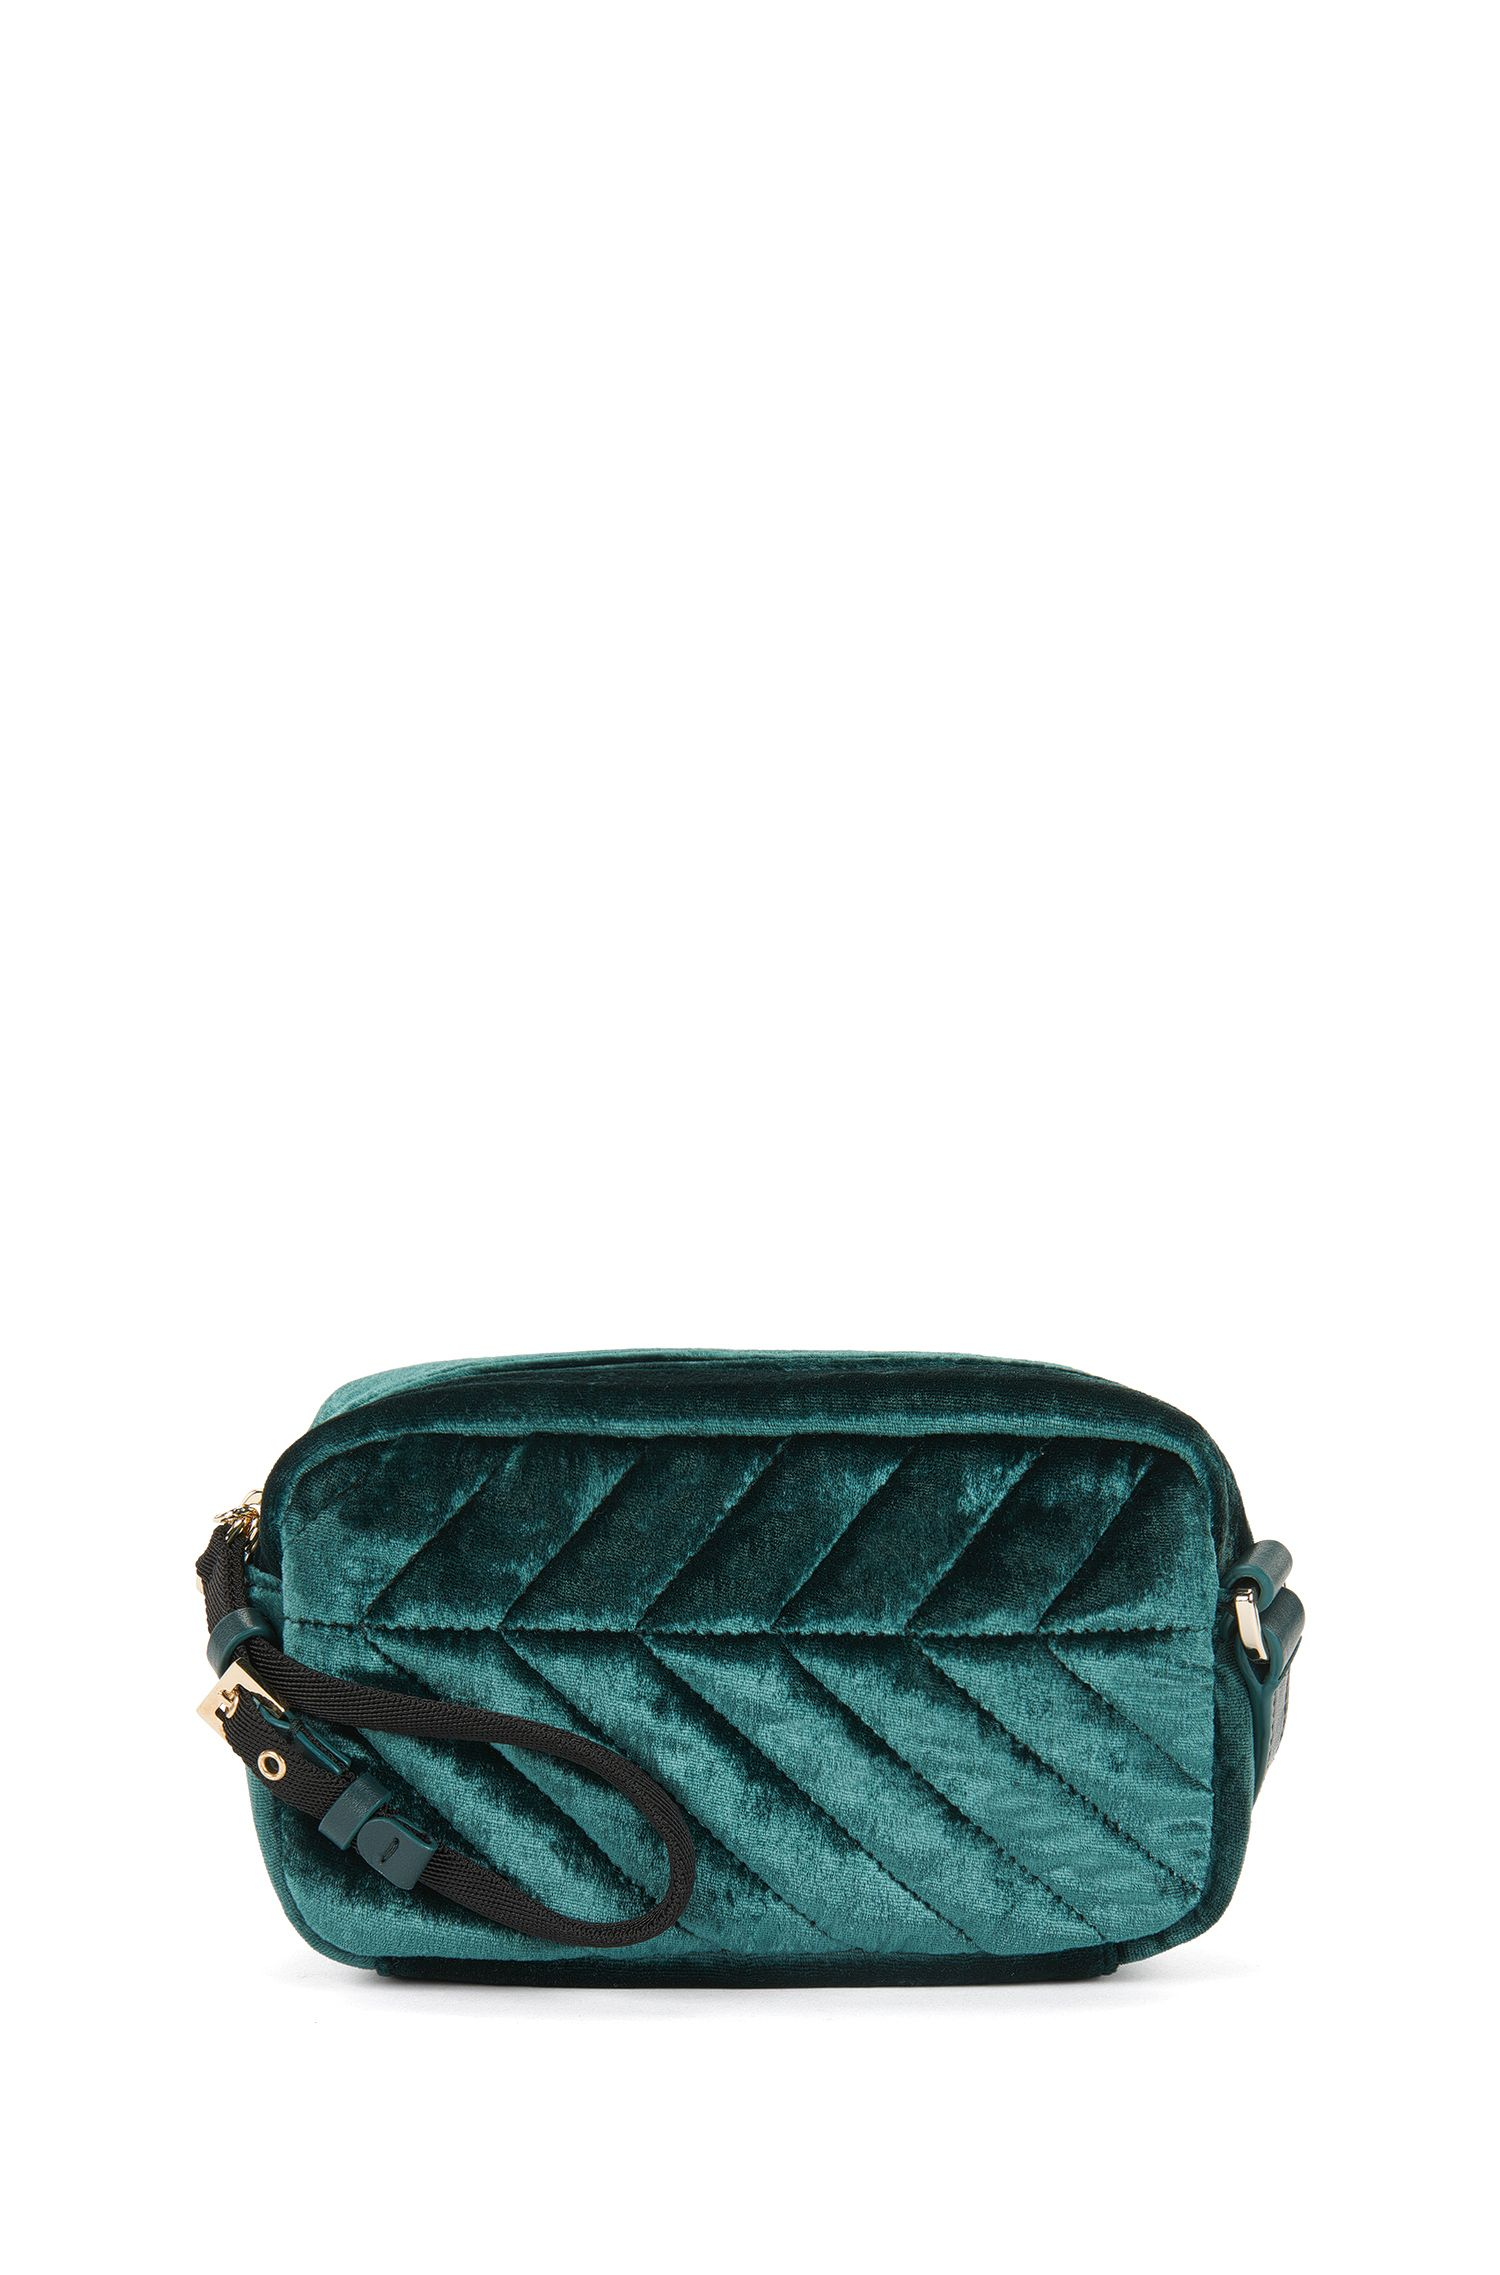 Cross-body bag in Italian velvet